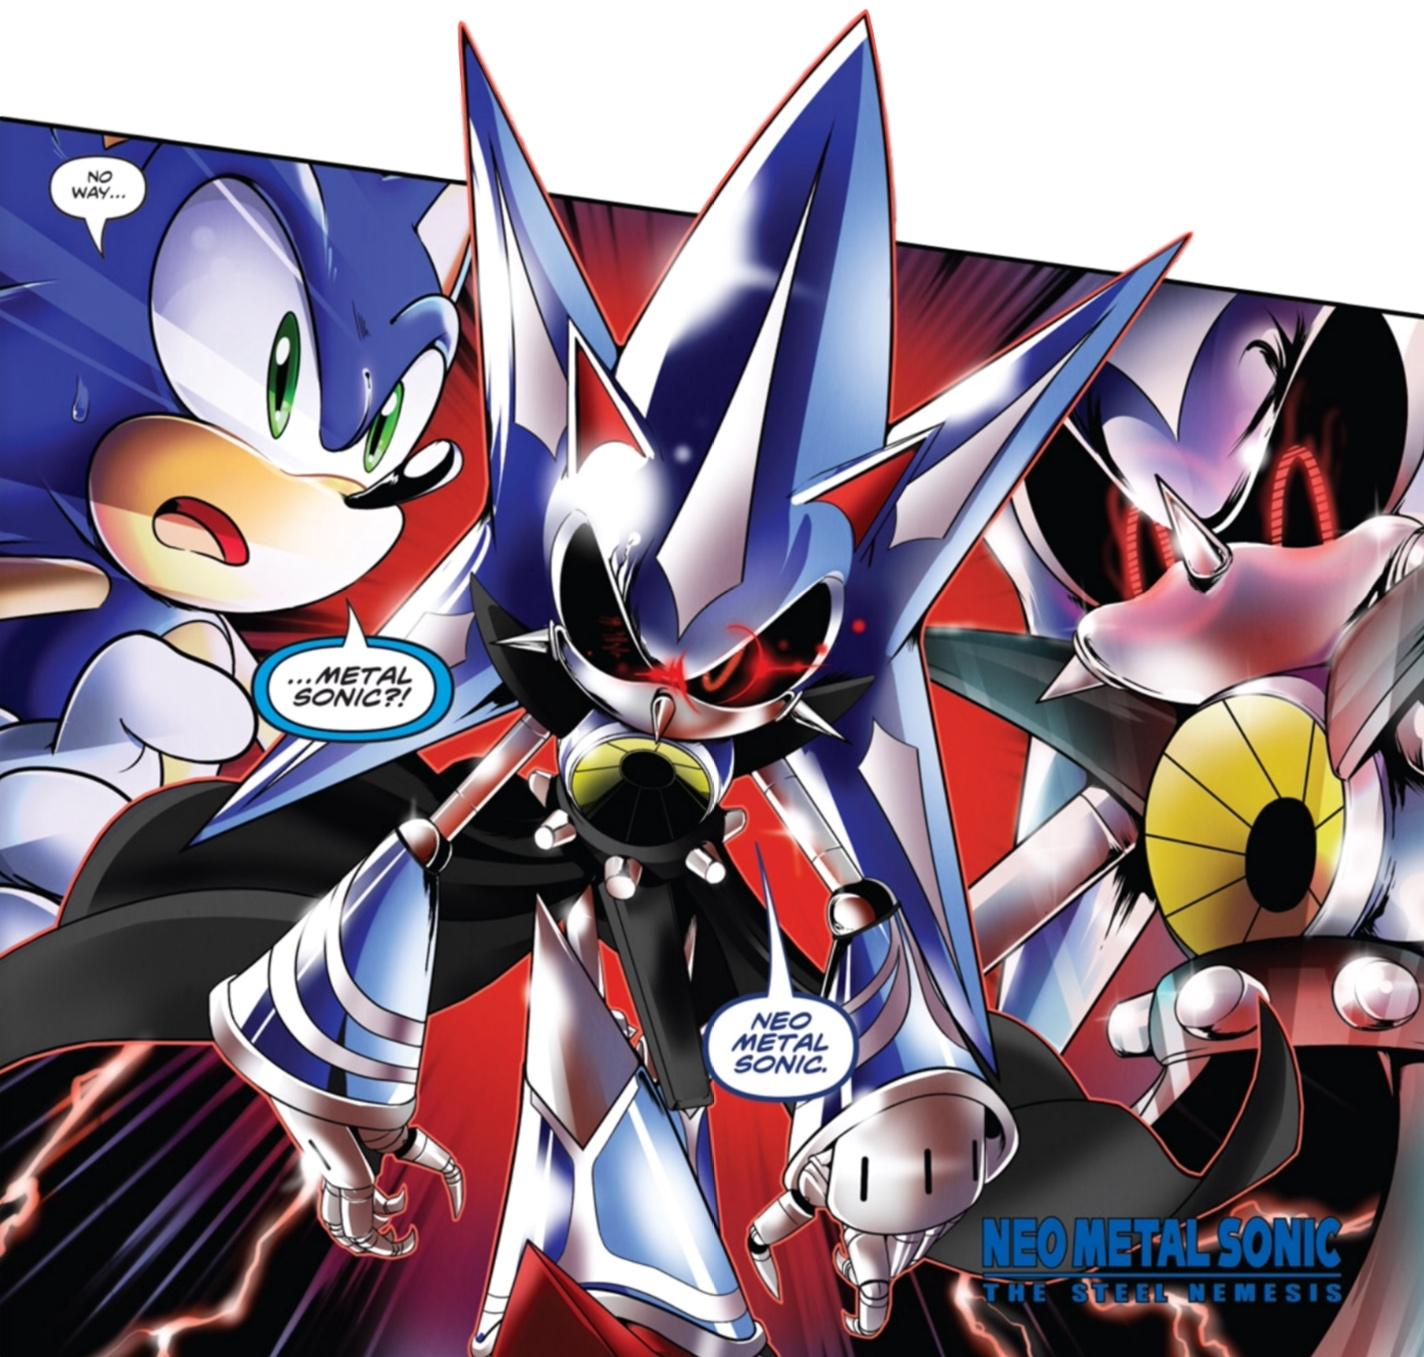 RustedRusher4455/Pure Evil Removal Proposal: Metal Sonic from Sonic the Hedgehog IDW comics